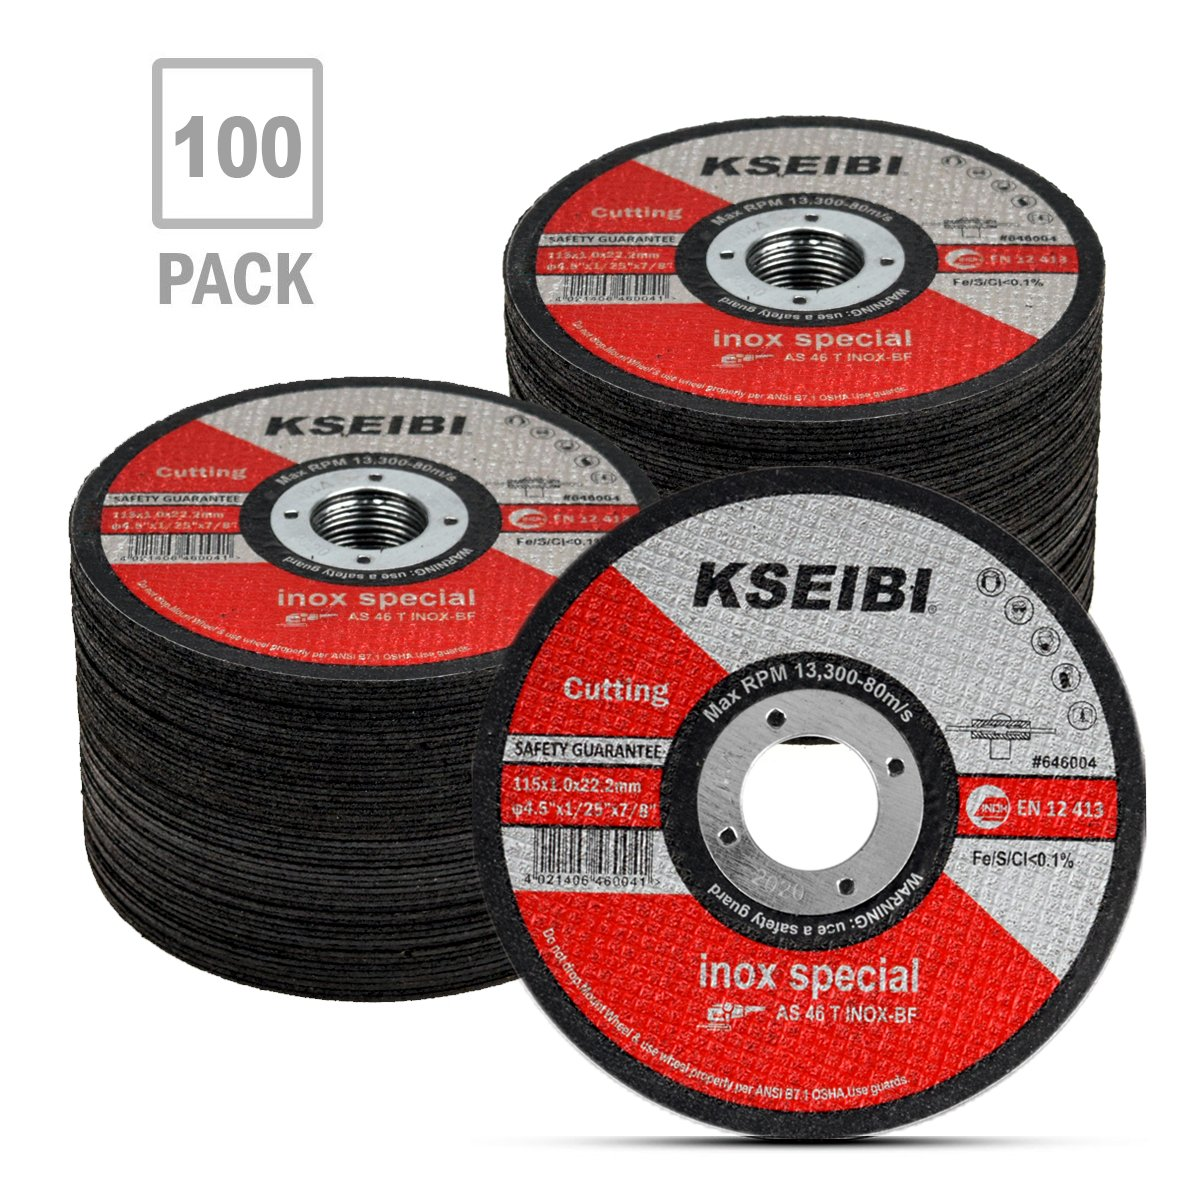 KSEIBI 646004 Metal Stainless Steel Cutting Disc 4-1/2''x.040''x7/8'' Cut-Off Wheel T41 (100 Pack)